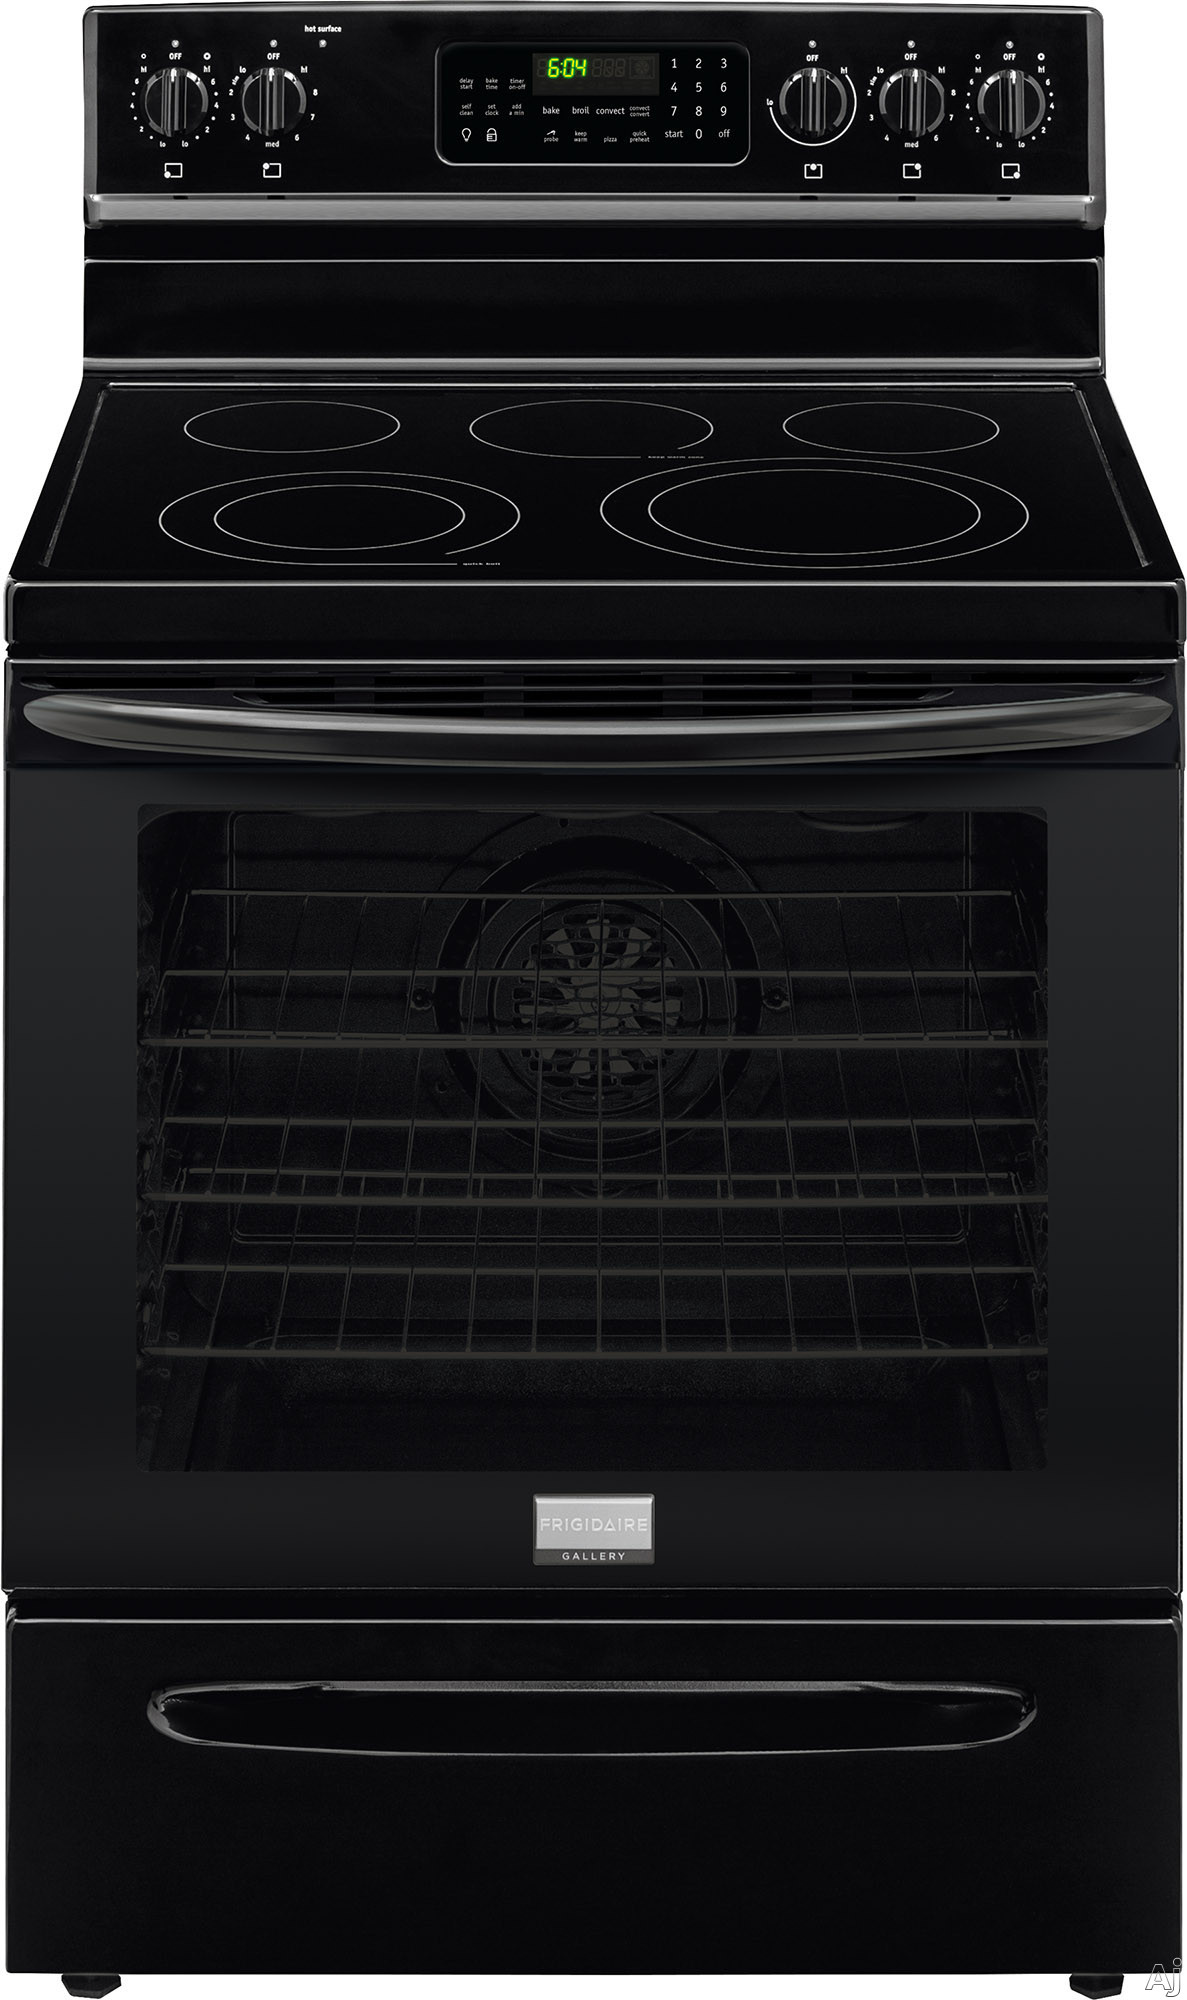 "Frigidaire Gallery Series FGEF3058RB 30 Inch Freestanding Electric Range with True Convection, Temperature Probe, Storage Drawer, Keep Warm, Fits-Moreâ""¢ Cooktop, Precision Setâ""¢ Controls, 5."